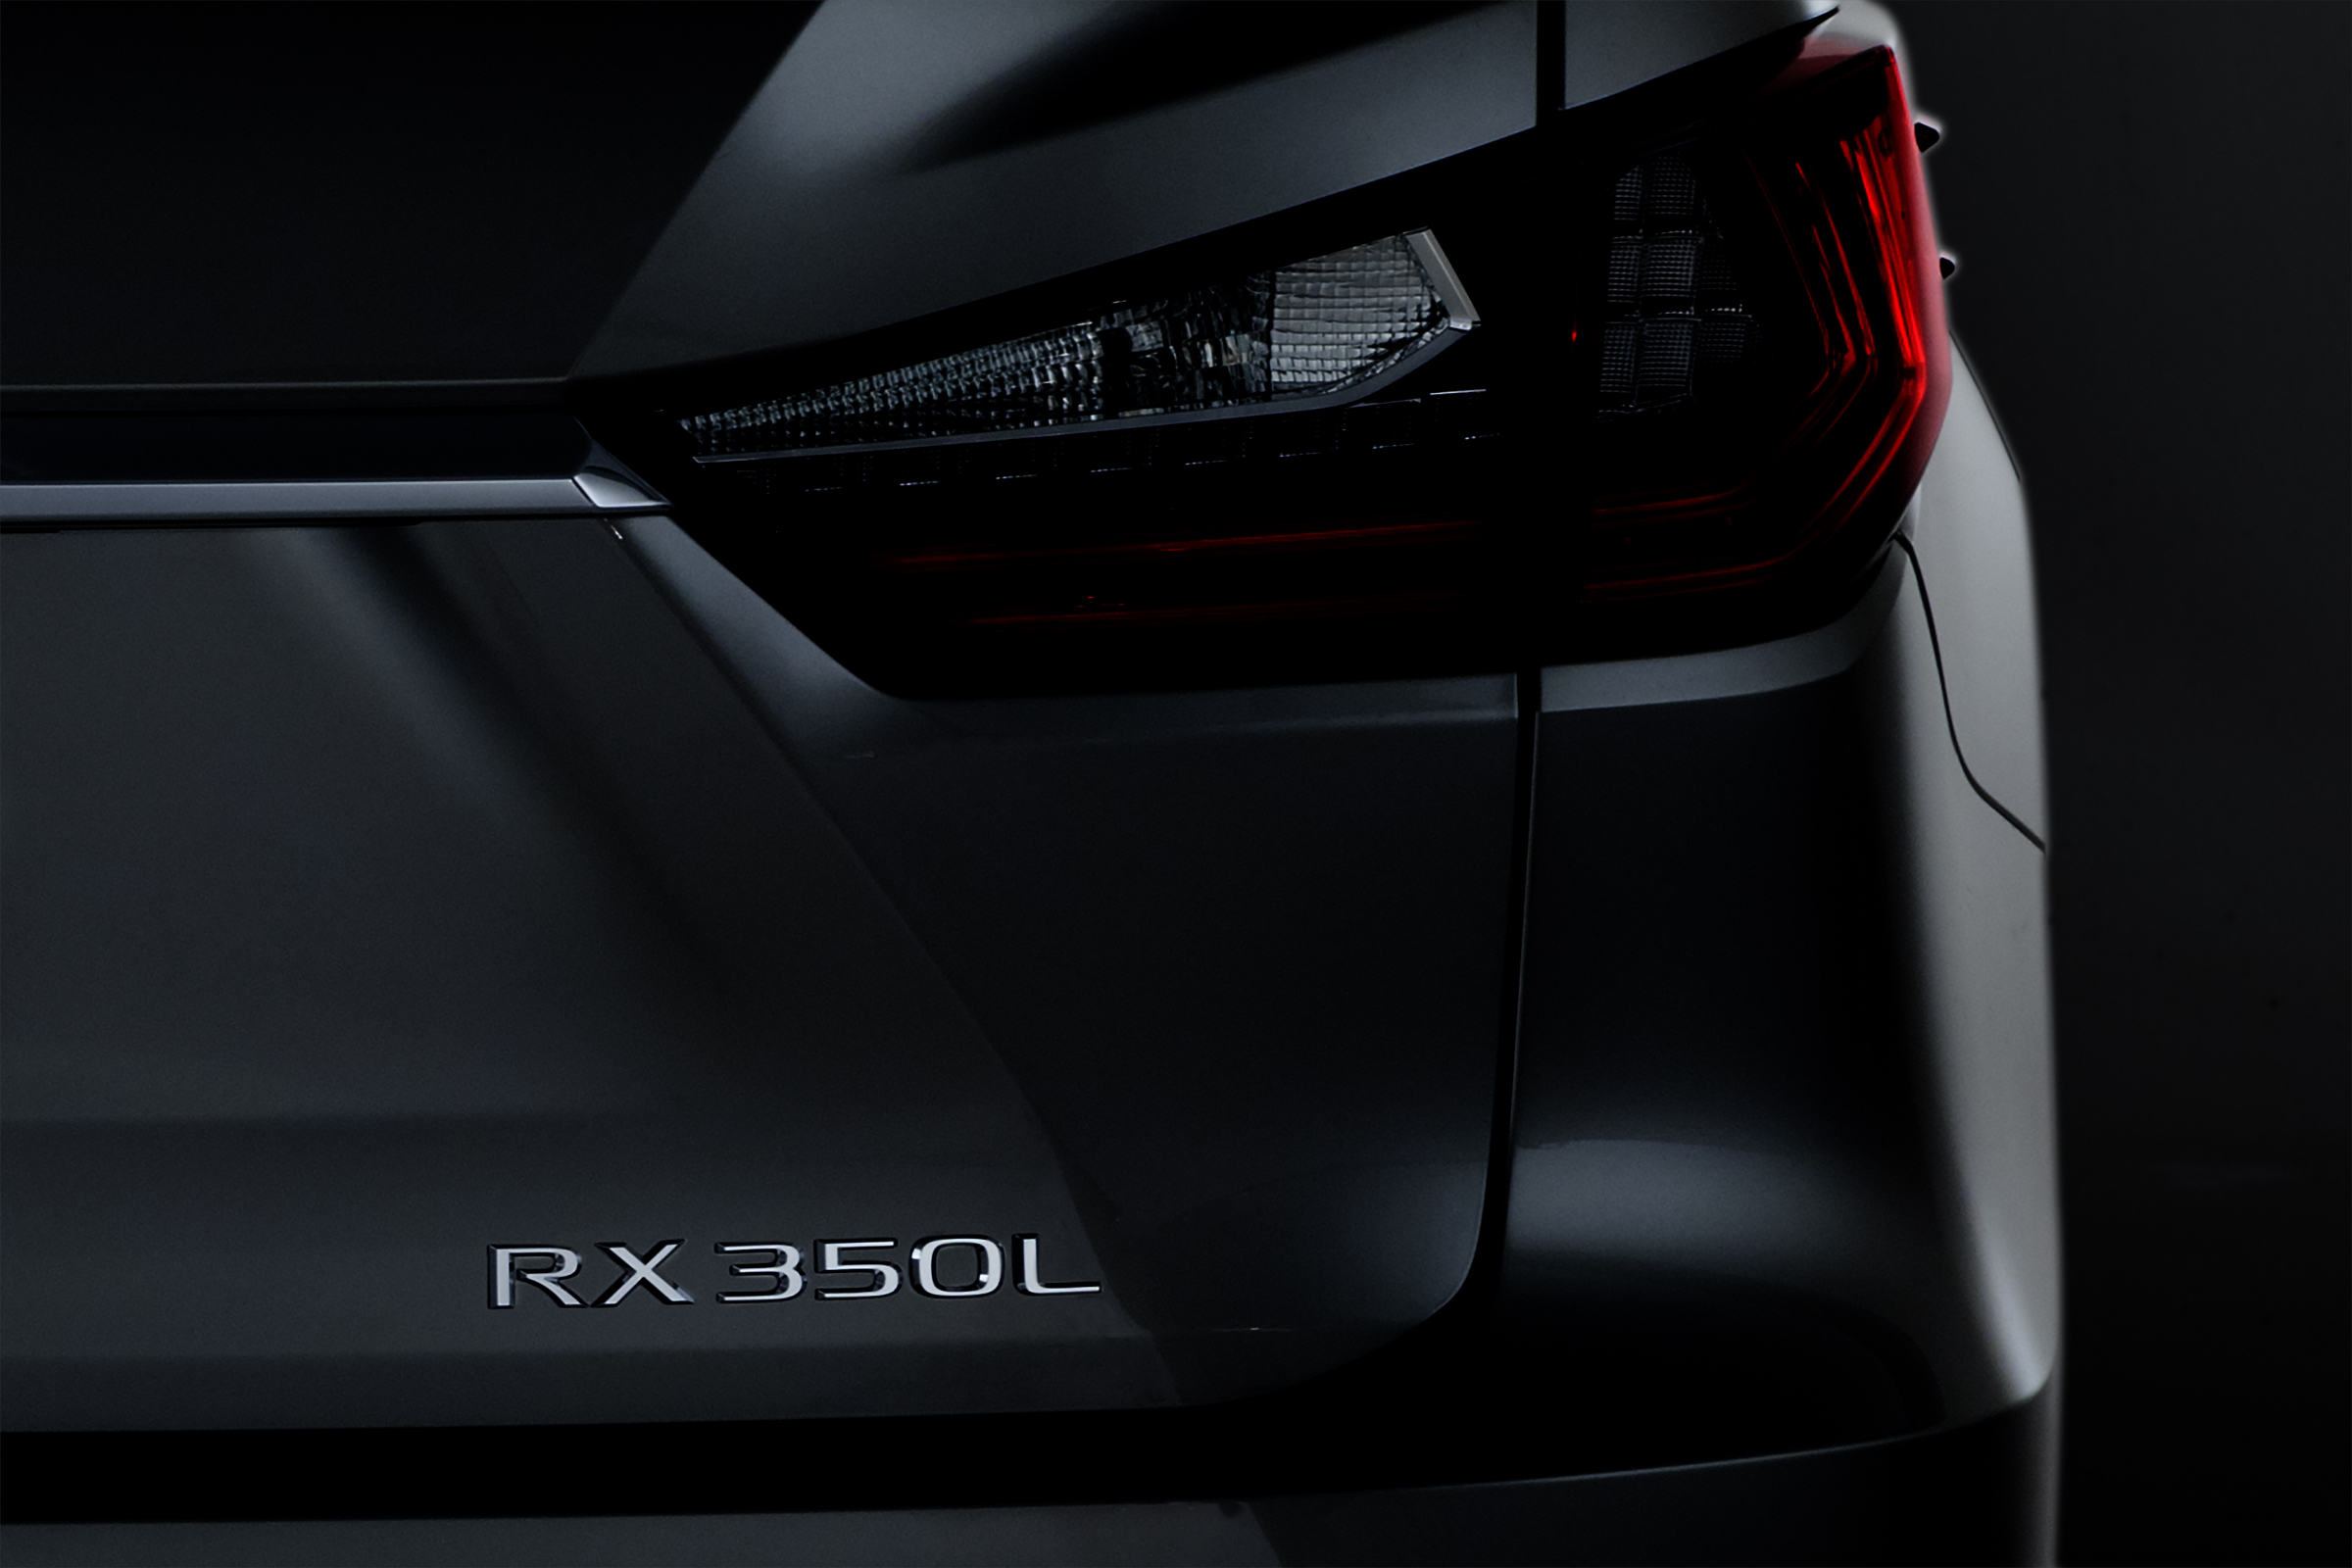 The Power of Three: All-new 3-row Lexus RX 350L to Debut at the 2017 Los Angeles Auto Show